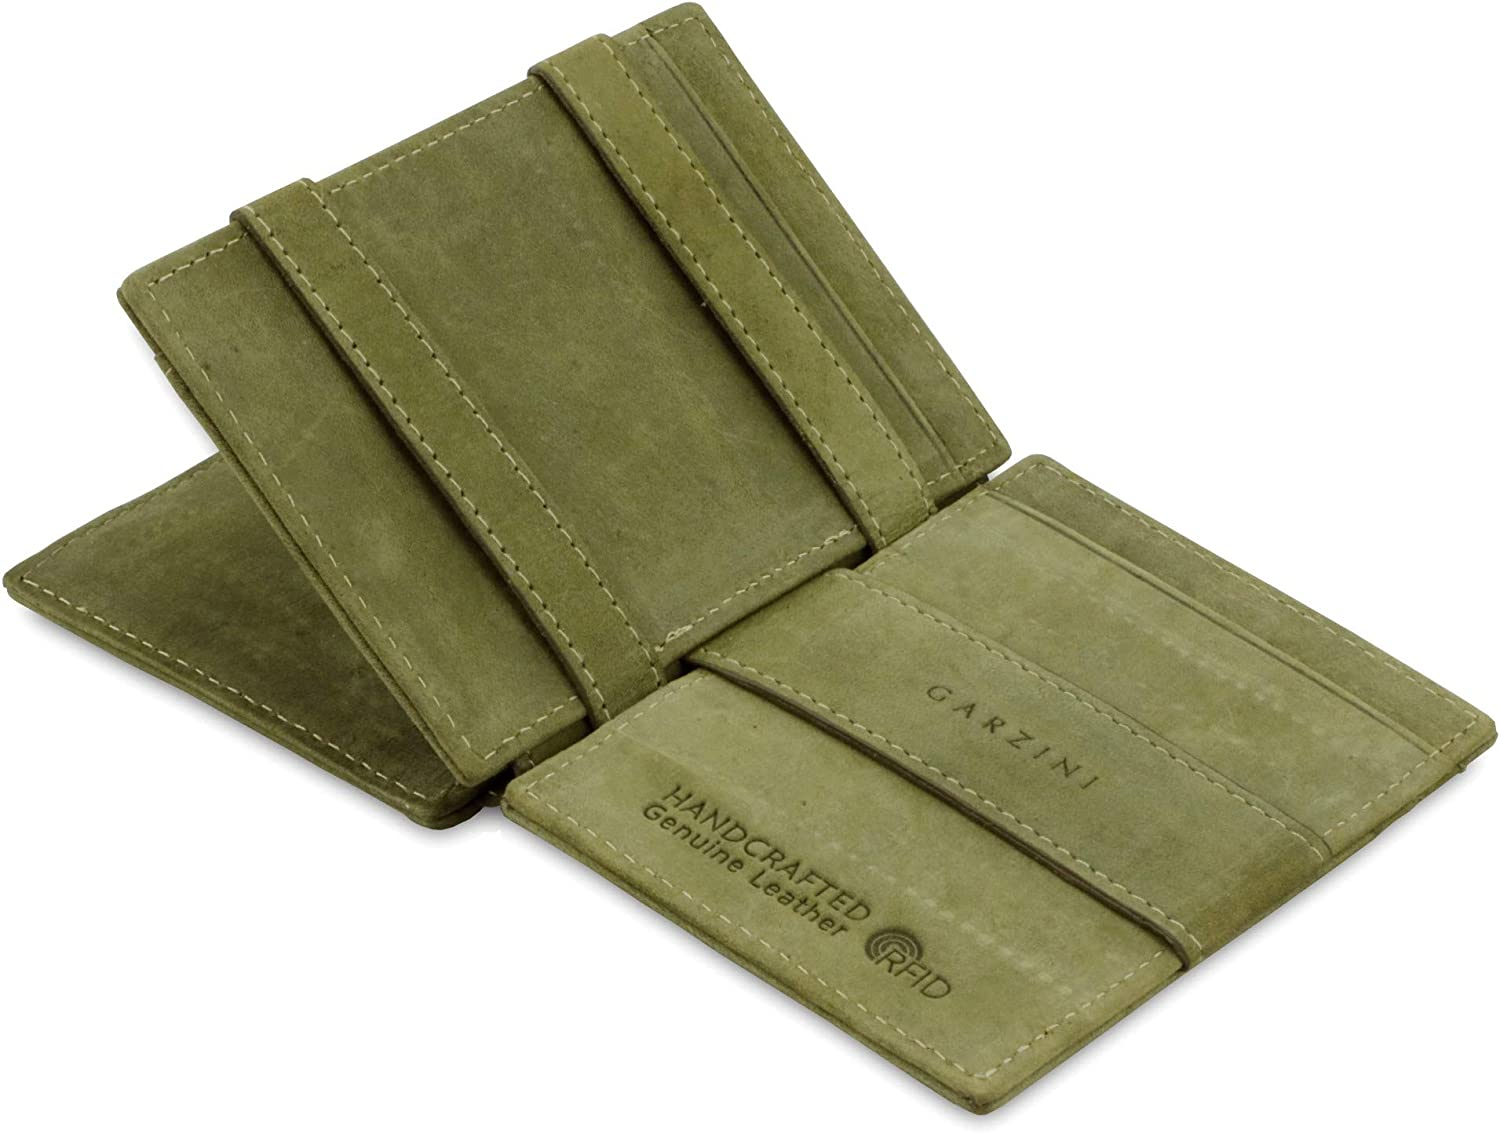 Garzini Spacious Magic Wallet with ID Window, Wallet with RFID card holder, Leather Wallet for 14 cards, Olive Green